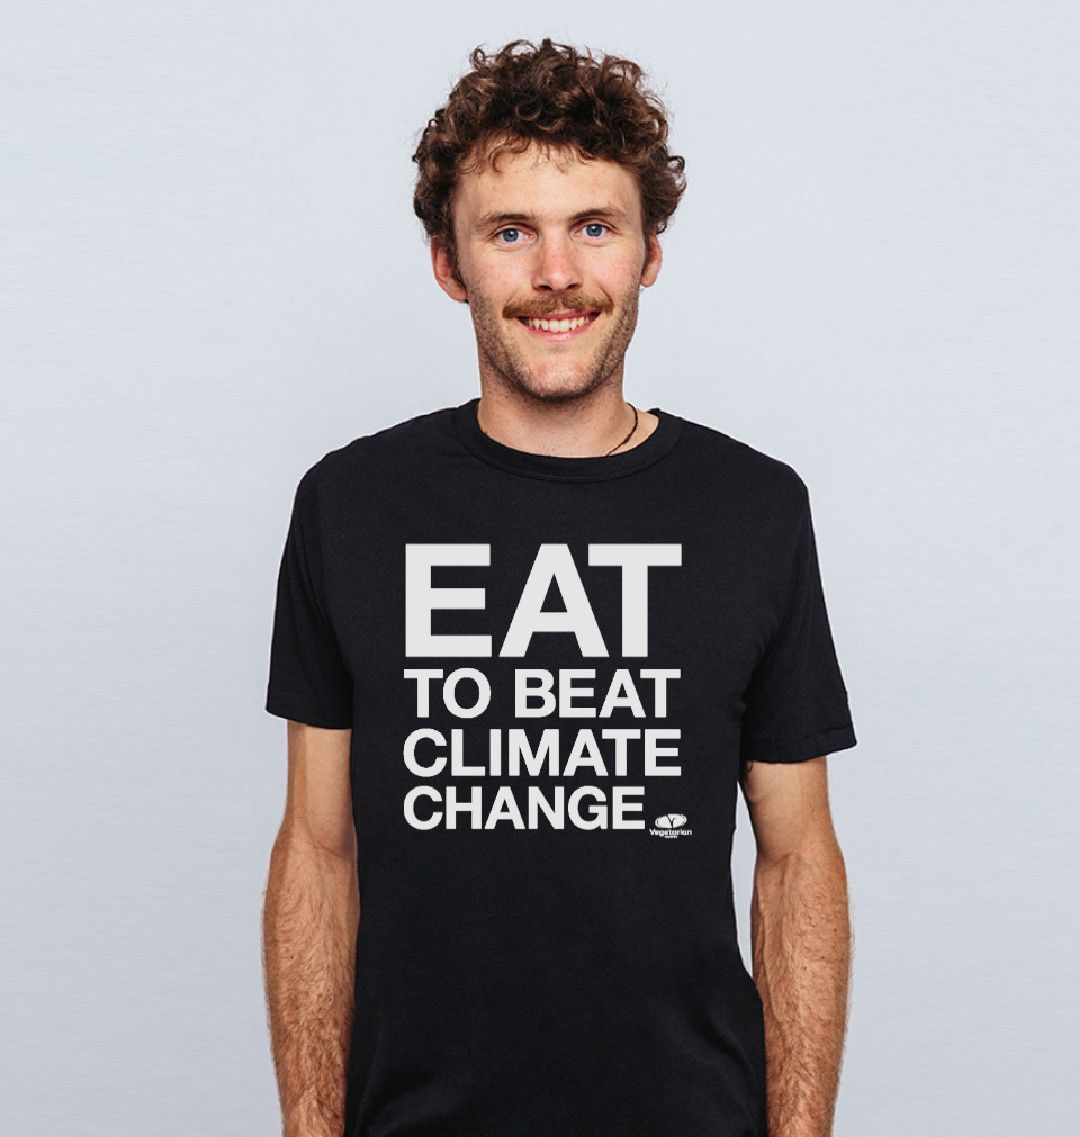 Did you know that our #EatToBeatClimateChange  t-shirts are designed to be returned once they are worn out? The material will be re-purposed and used again for new products. You'll even get £5 store credit. Buy yours here: